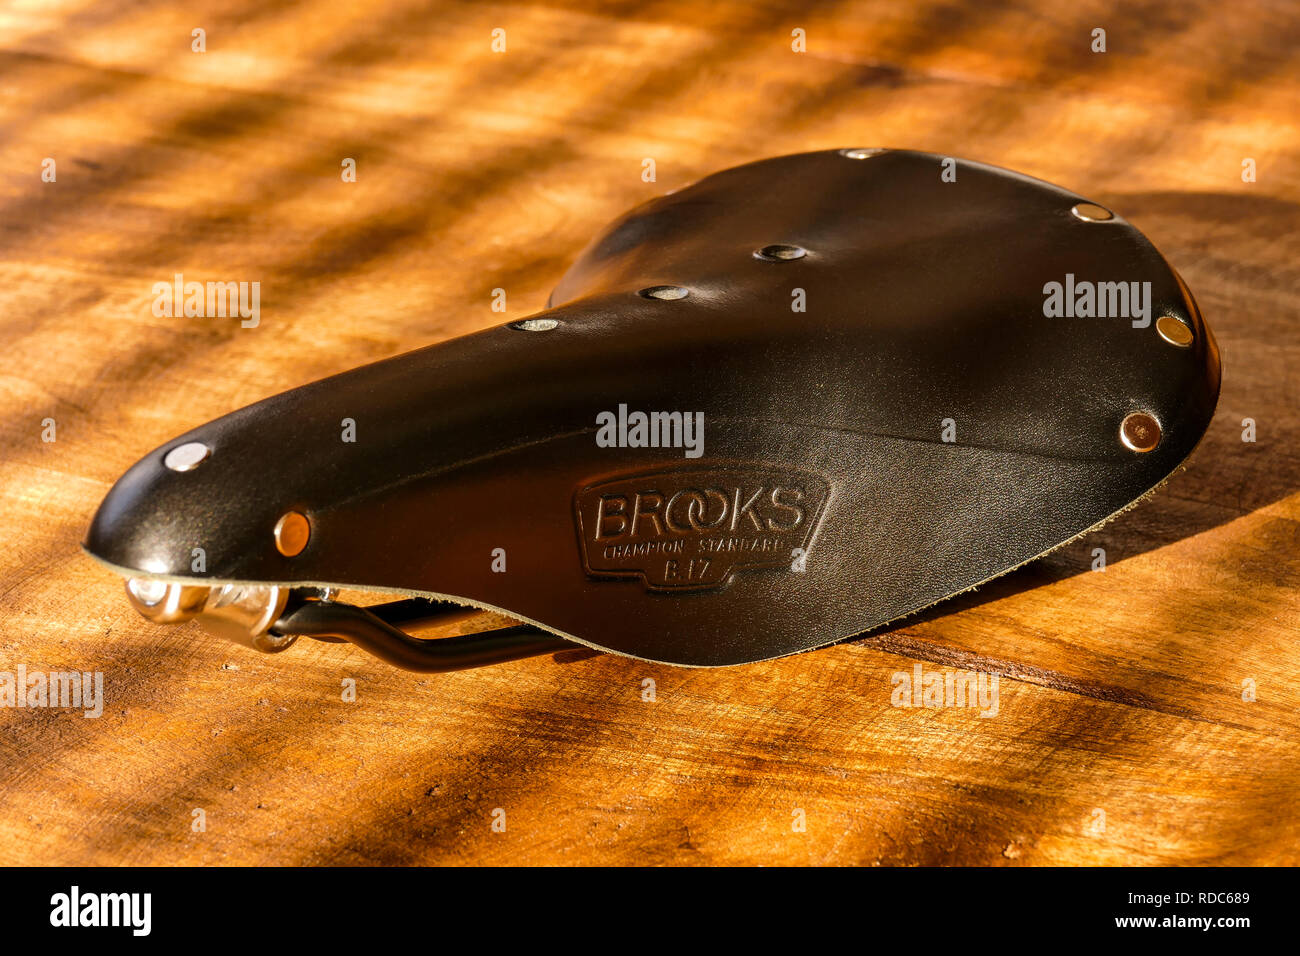 Brooks B17 standard black leather bicycle saddle on wooden table, side view Stock Photo